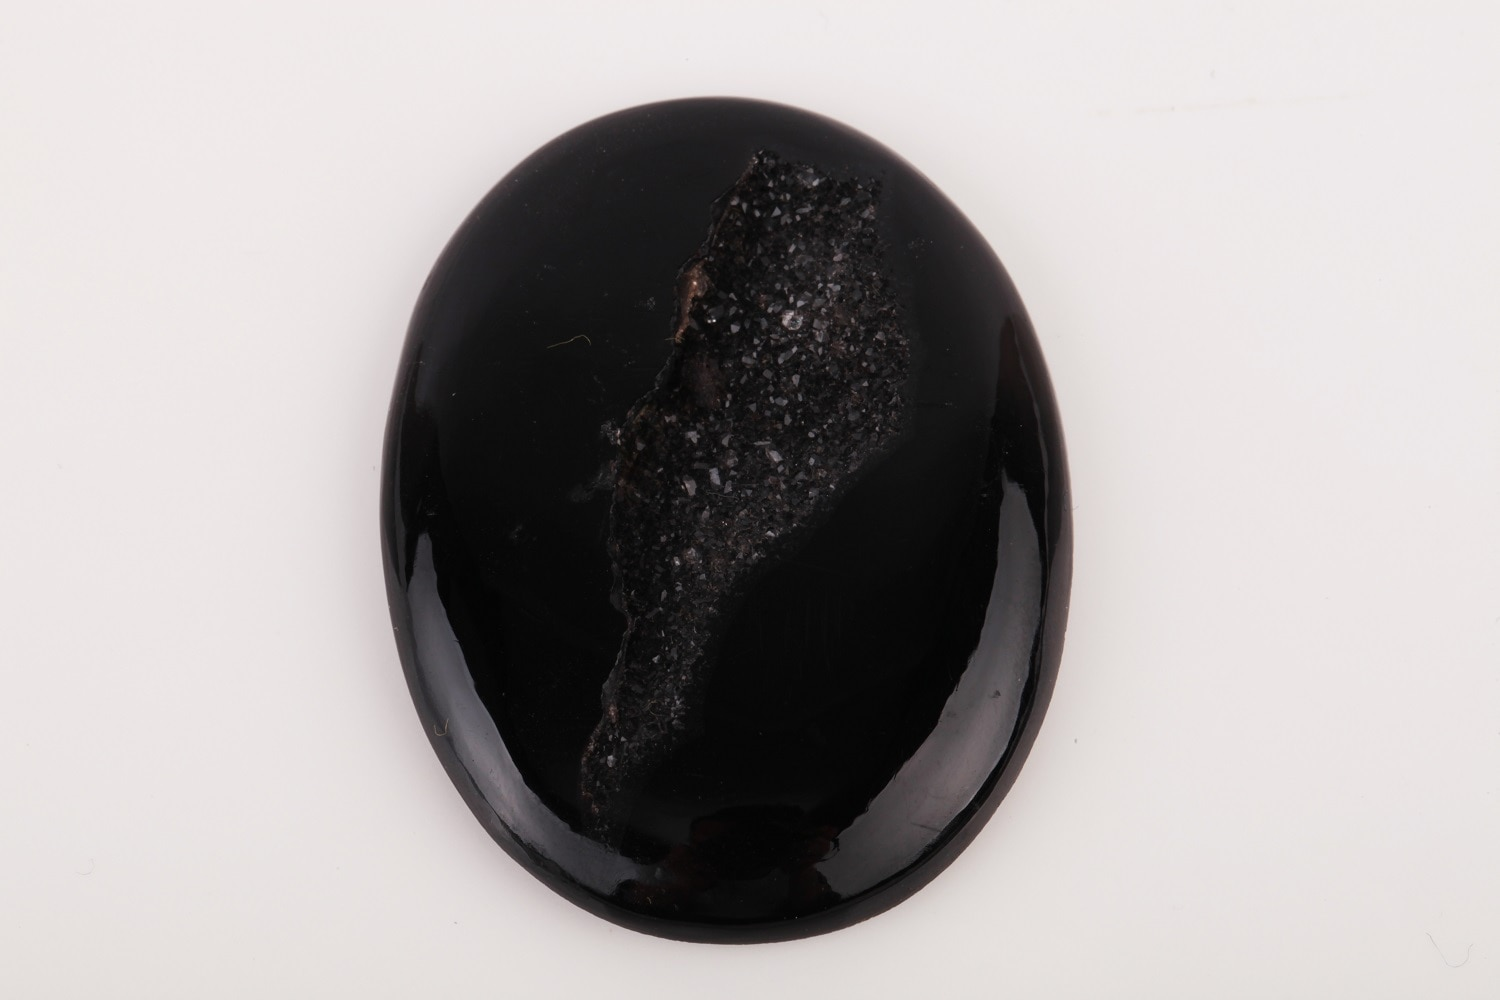 UM US JEWELRY Natural Crystal Stone